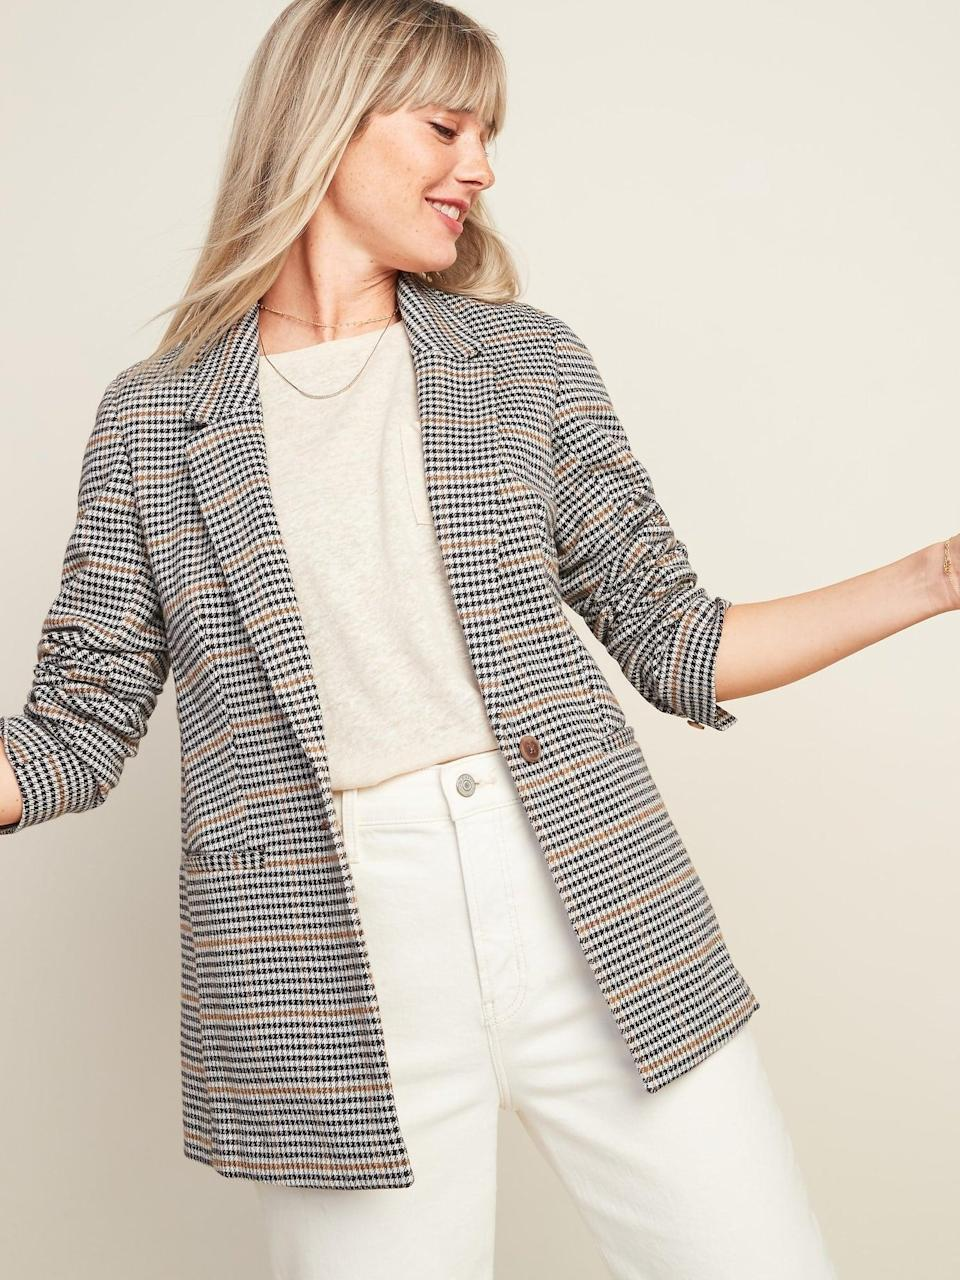 <p>Go from the office to happy hour with this <span>Patterned Blazer</span> ($40, originally $50) paired with a knit sweater and your favorite denim jeans.</p>